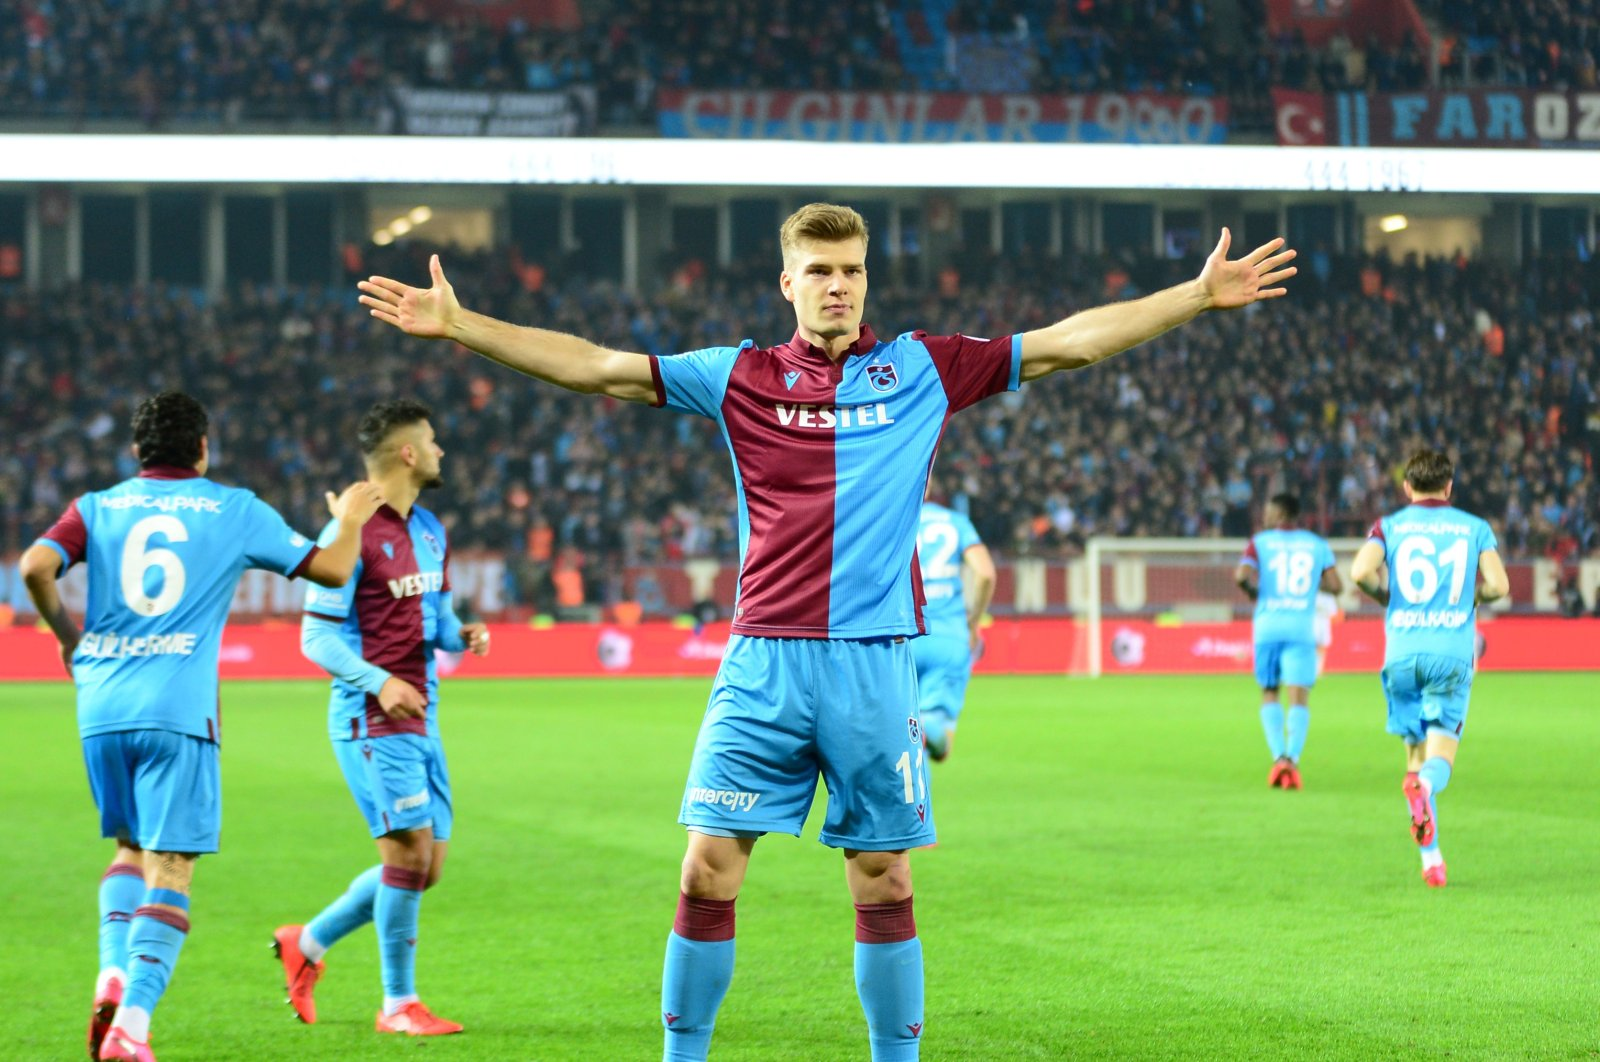 Trabzonspor's Alexander Sorloth celebrates a goal during a Turkish Cup match against Fenerbahçe in Trabzon, Turkey, March 3, 2020. (AA Photo)